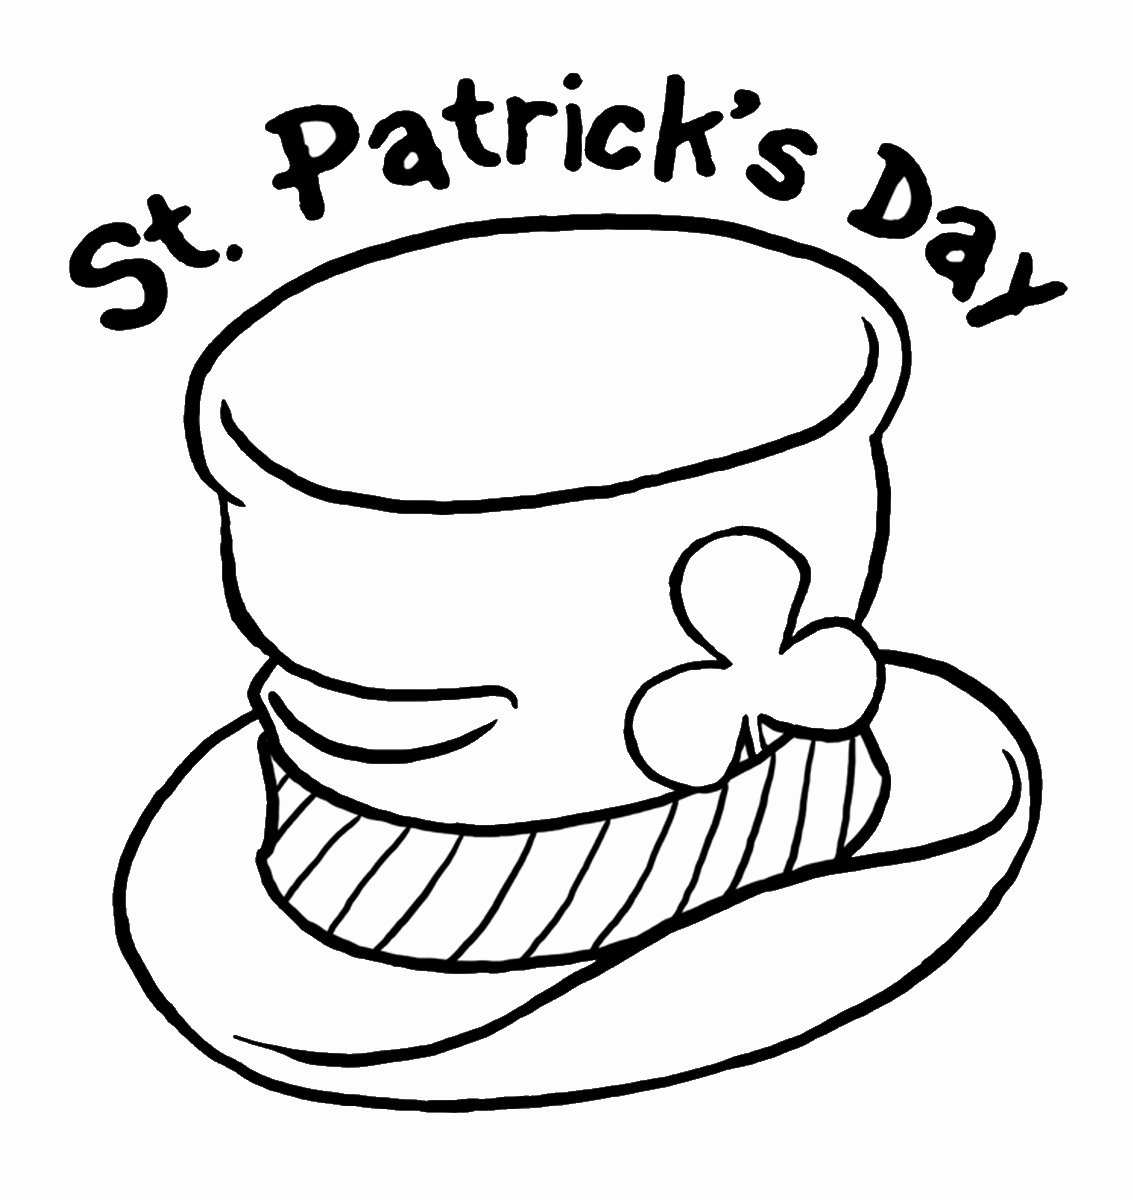 Shamrock Pictures to Print Unique St Patricks Day Coloring Pages Best Coloring Pages for Kids